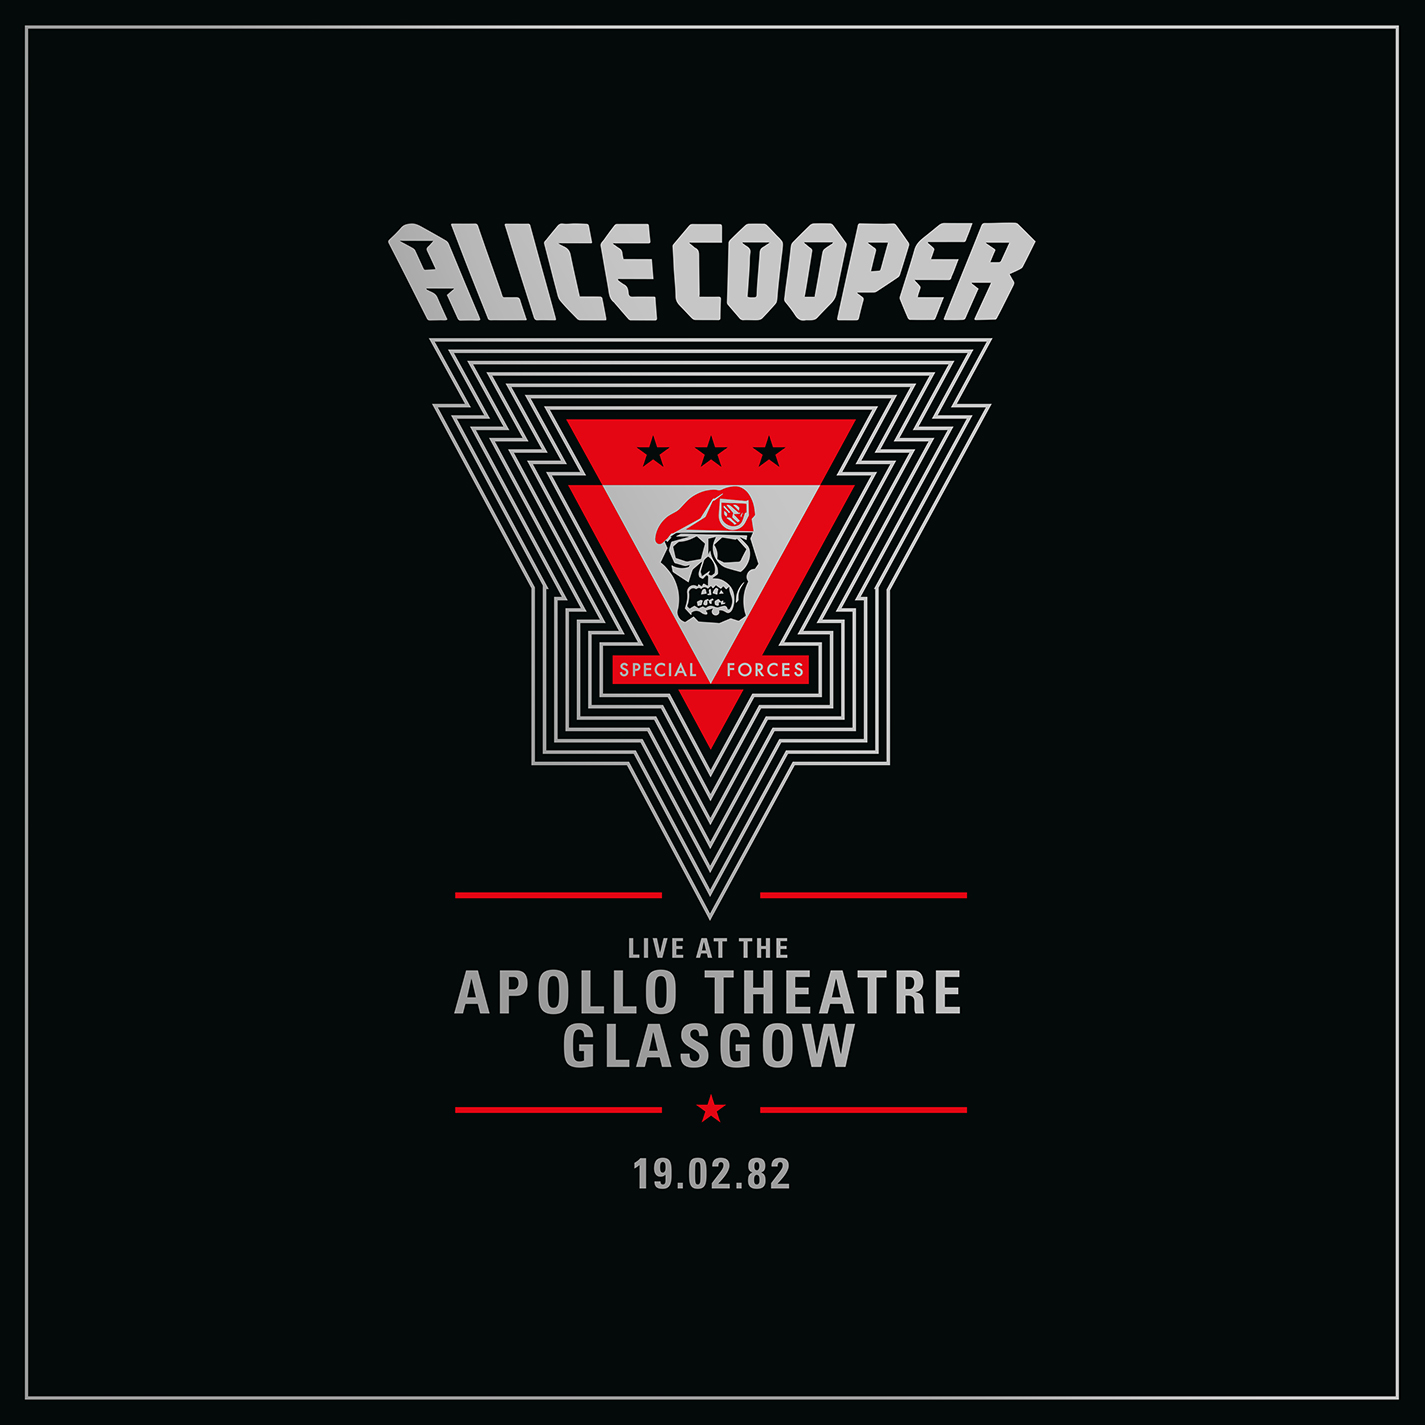 Alice Cooper - Live from the Apollo Theatre Glasgow Feb 19.1982 [RSD Drops Oct 2020]